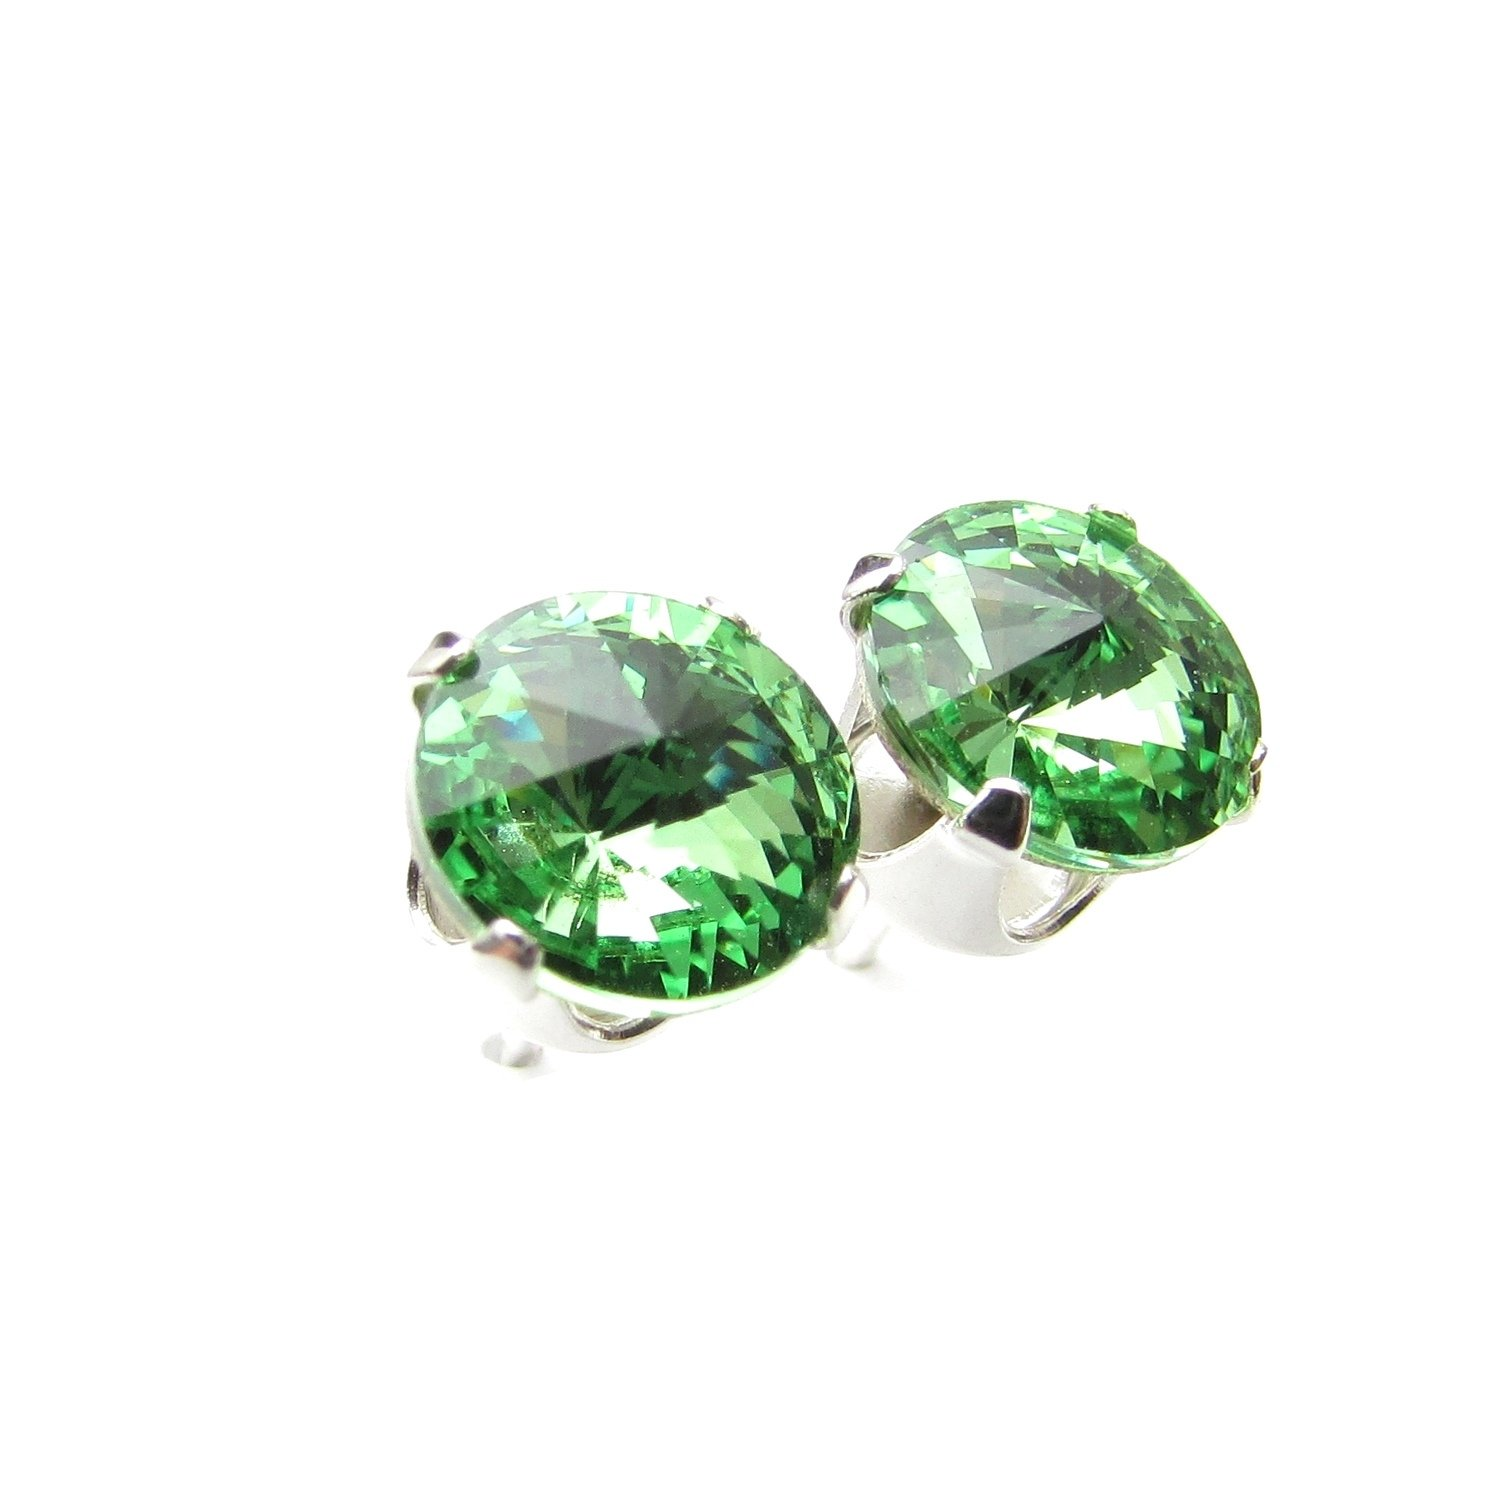 925 Sterling Silver stud earrings expertly made with sparkling Peridot (light green) crystal from SWAROVSKI® for Women 57JyvMLw8